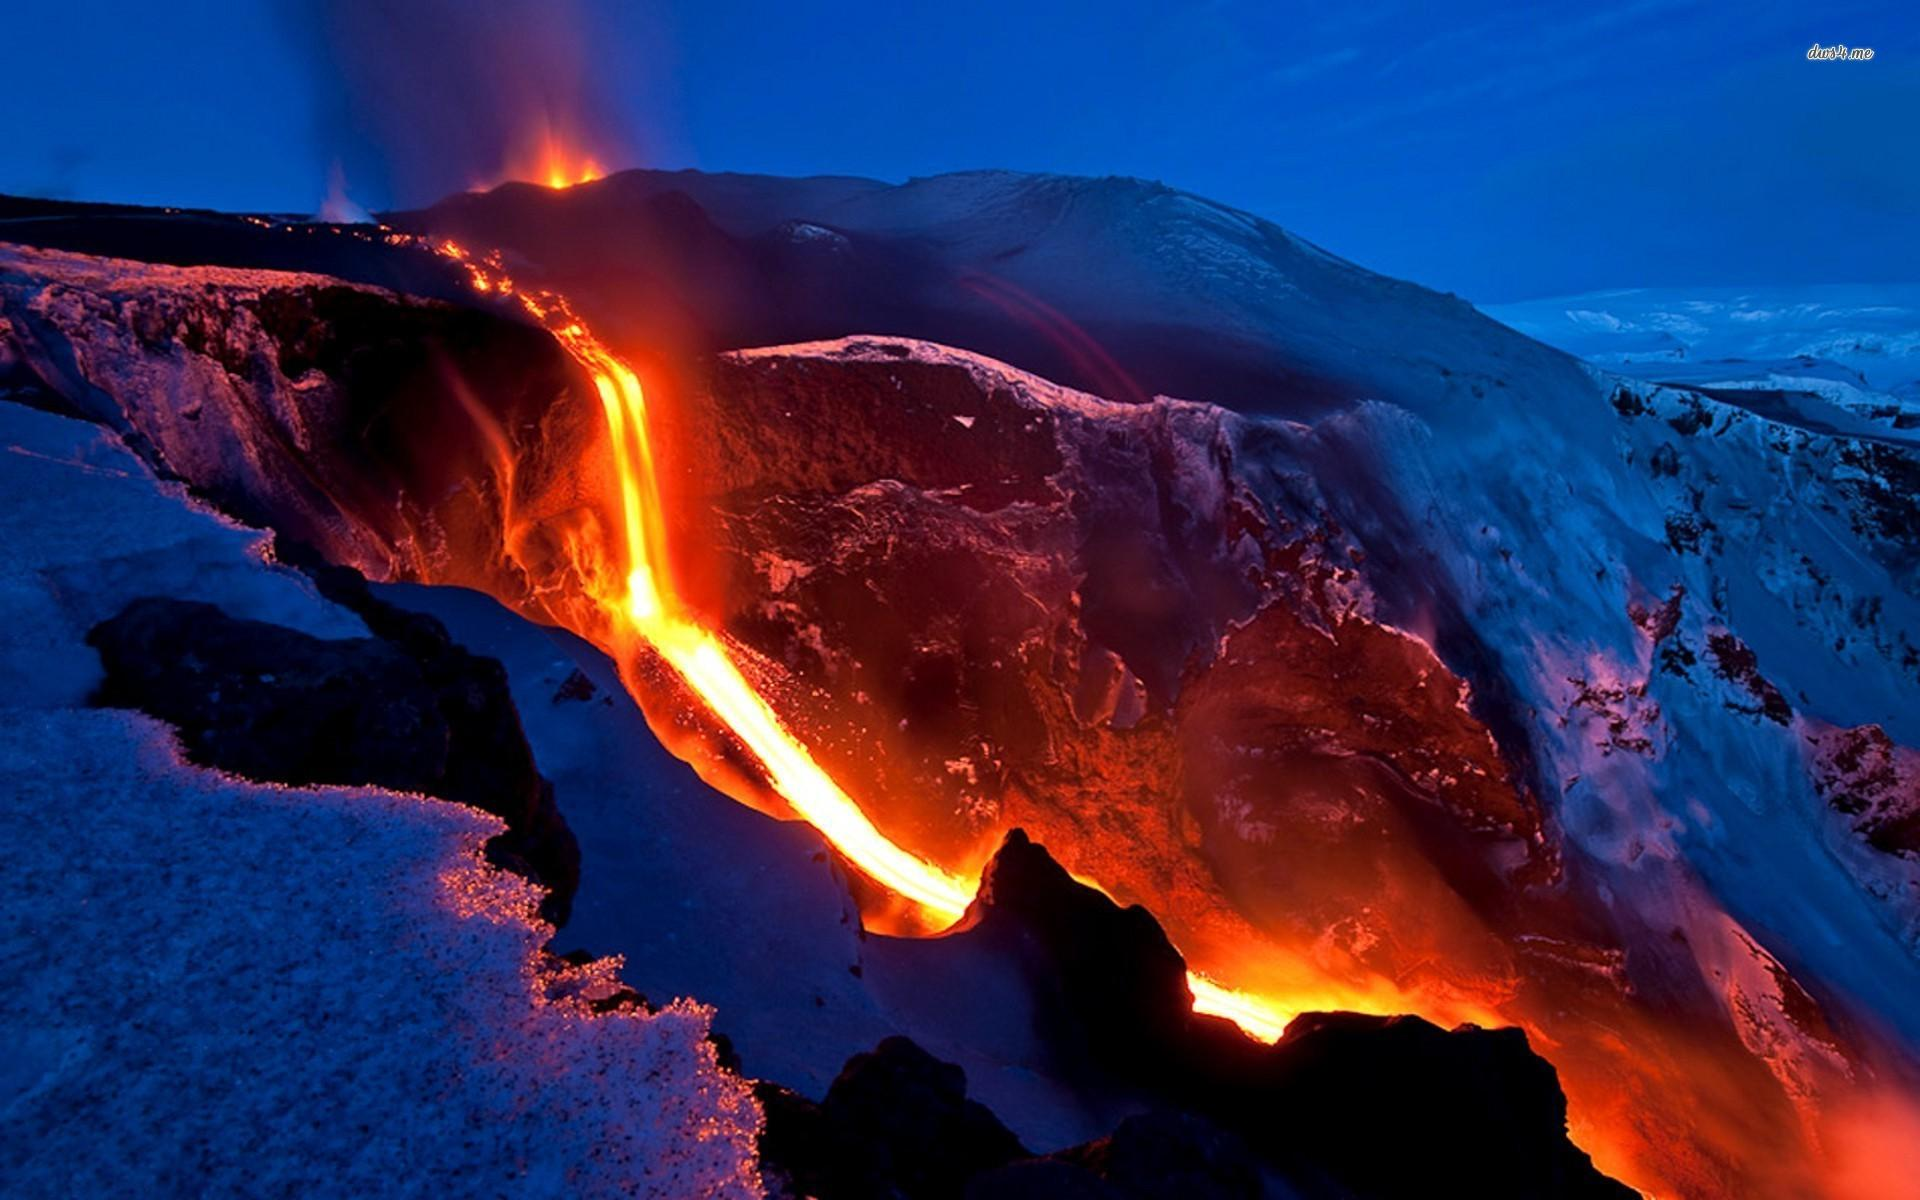 Volcano Wallpapers HD Backgrounds, Image, Pics, Photos Free